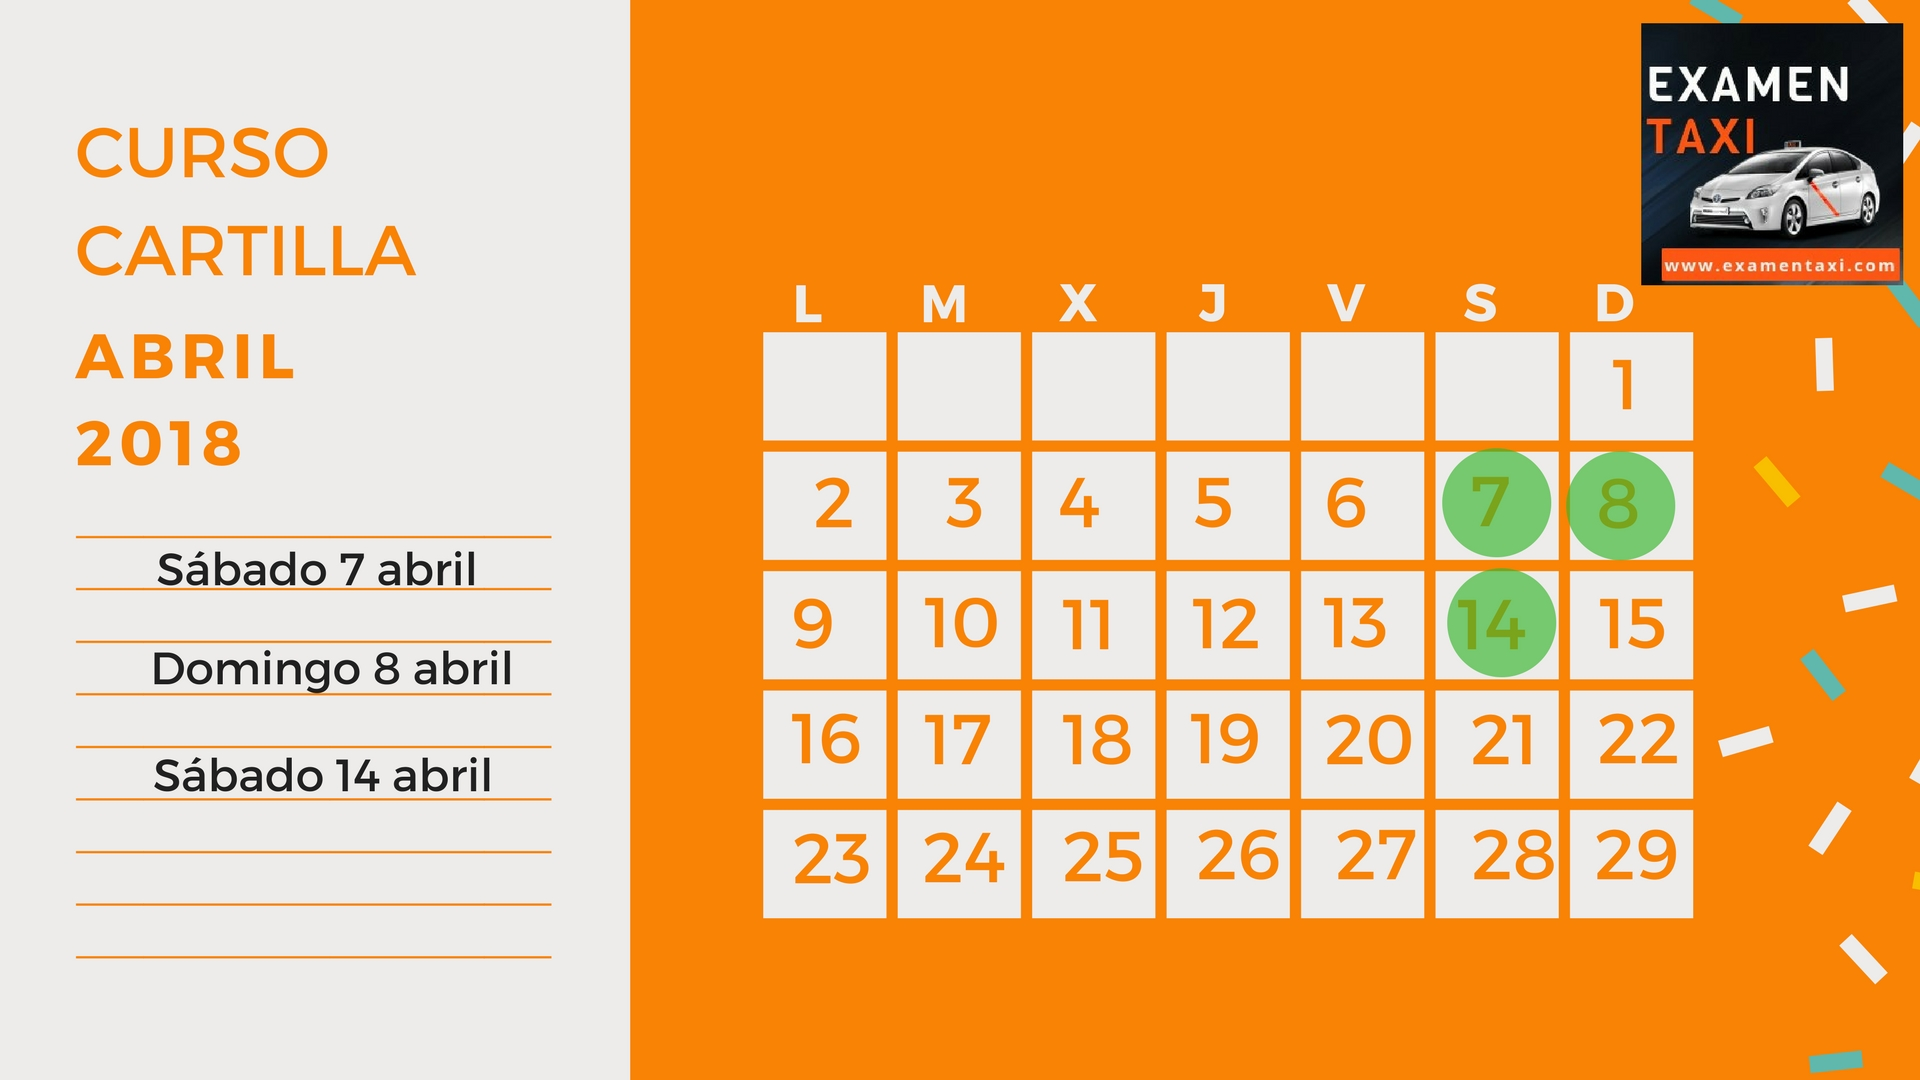 Calendario Curso Cartilla Abril 2018